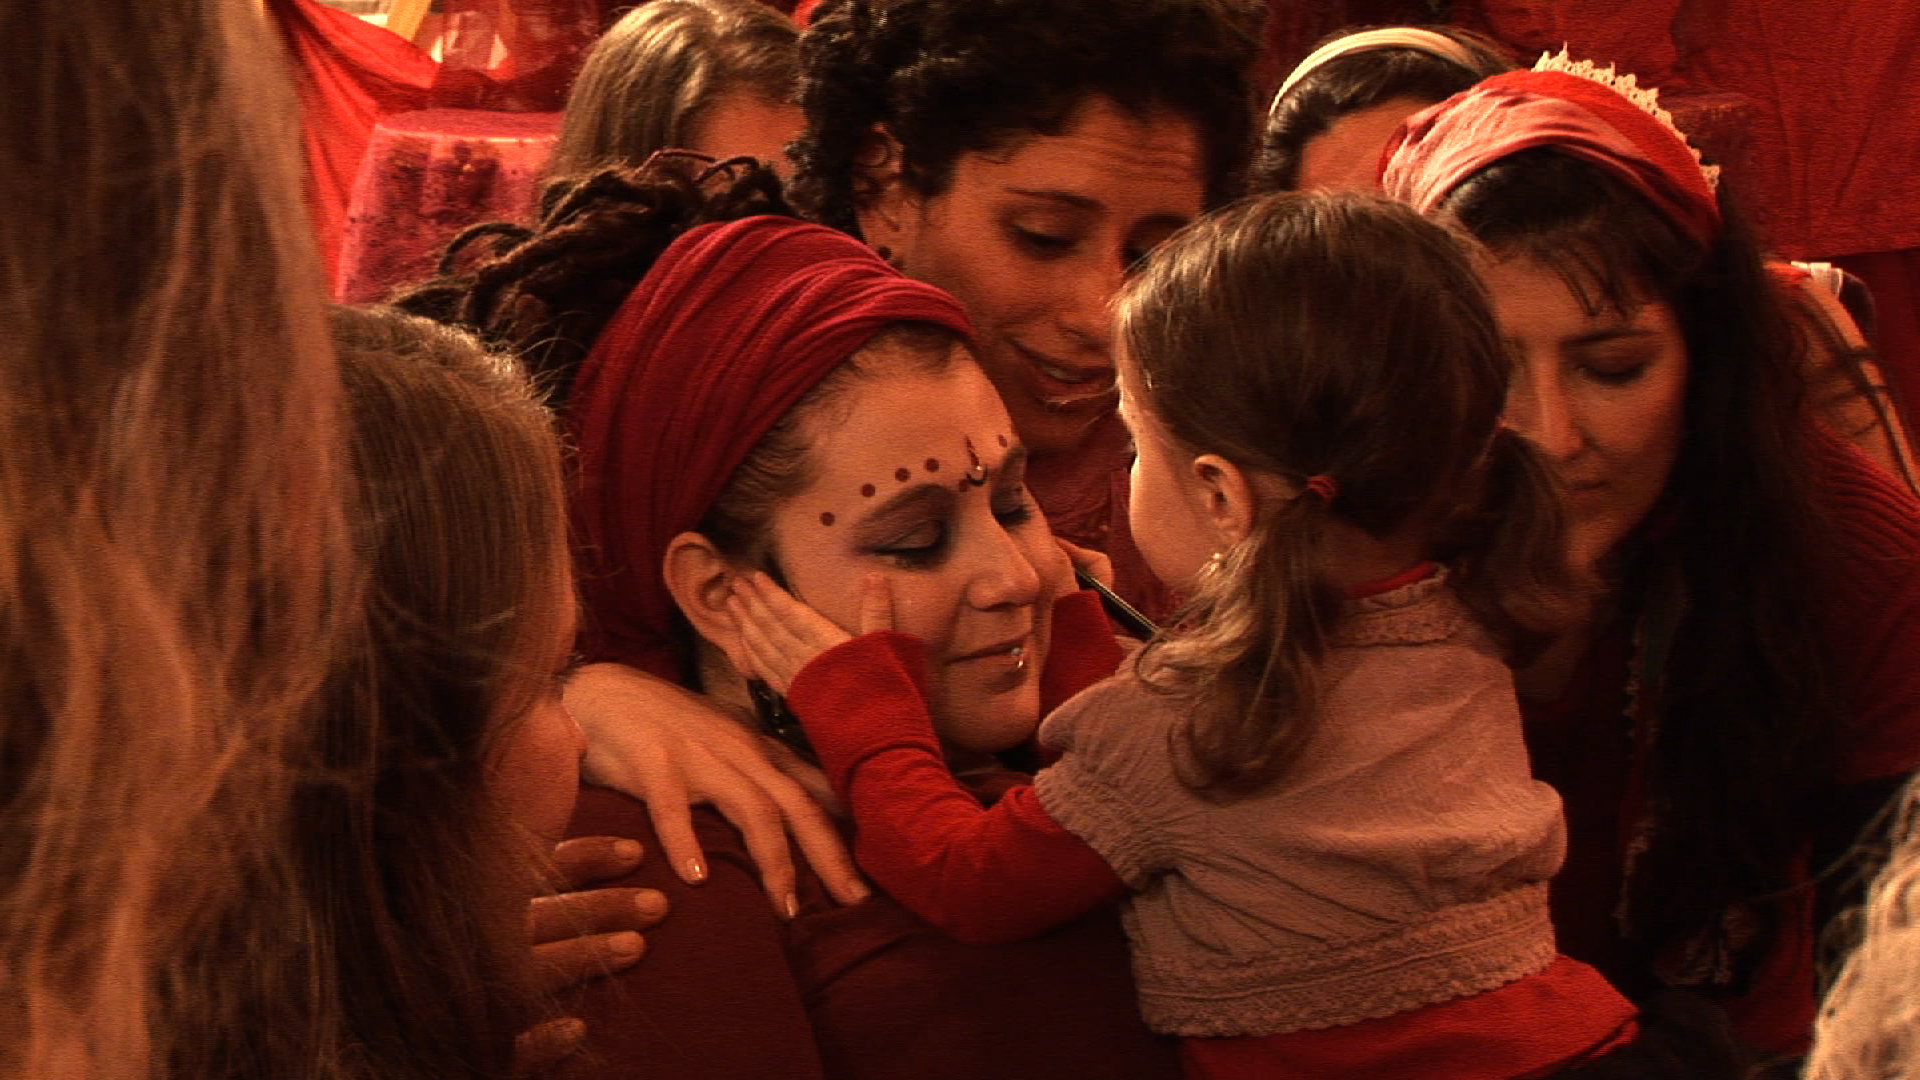 Things We Don't Talk About: Healing Narratives from the Red Tent